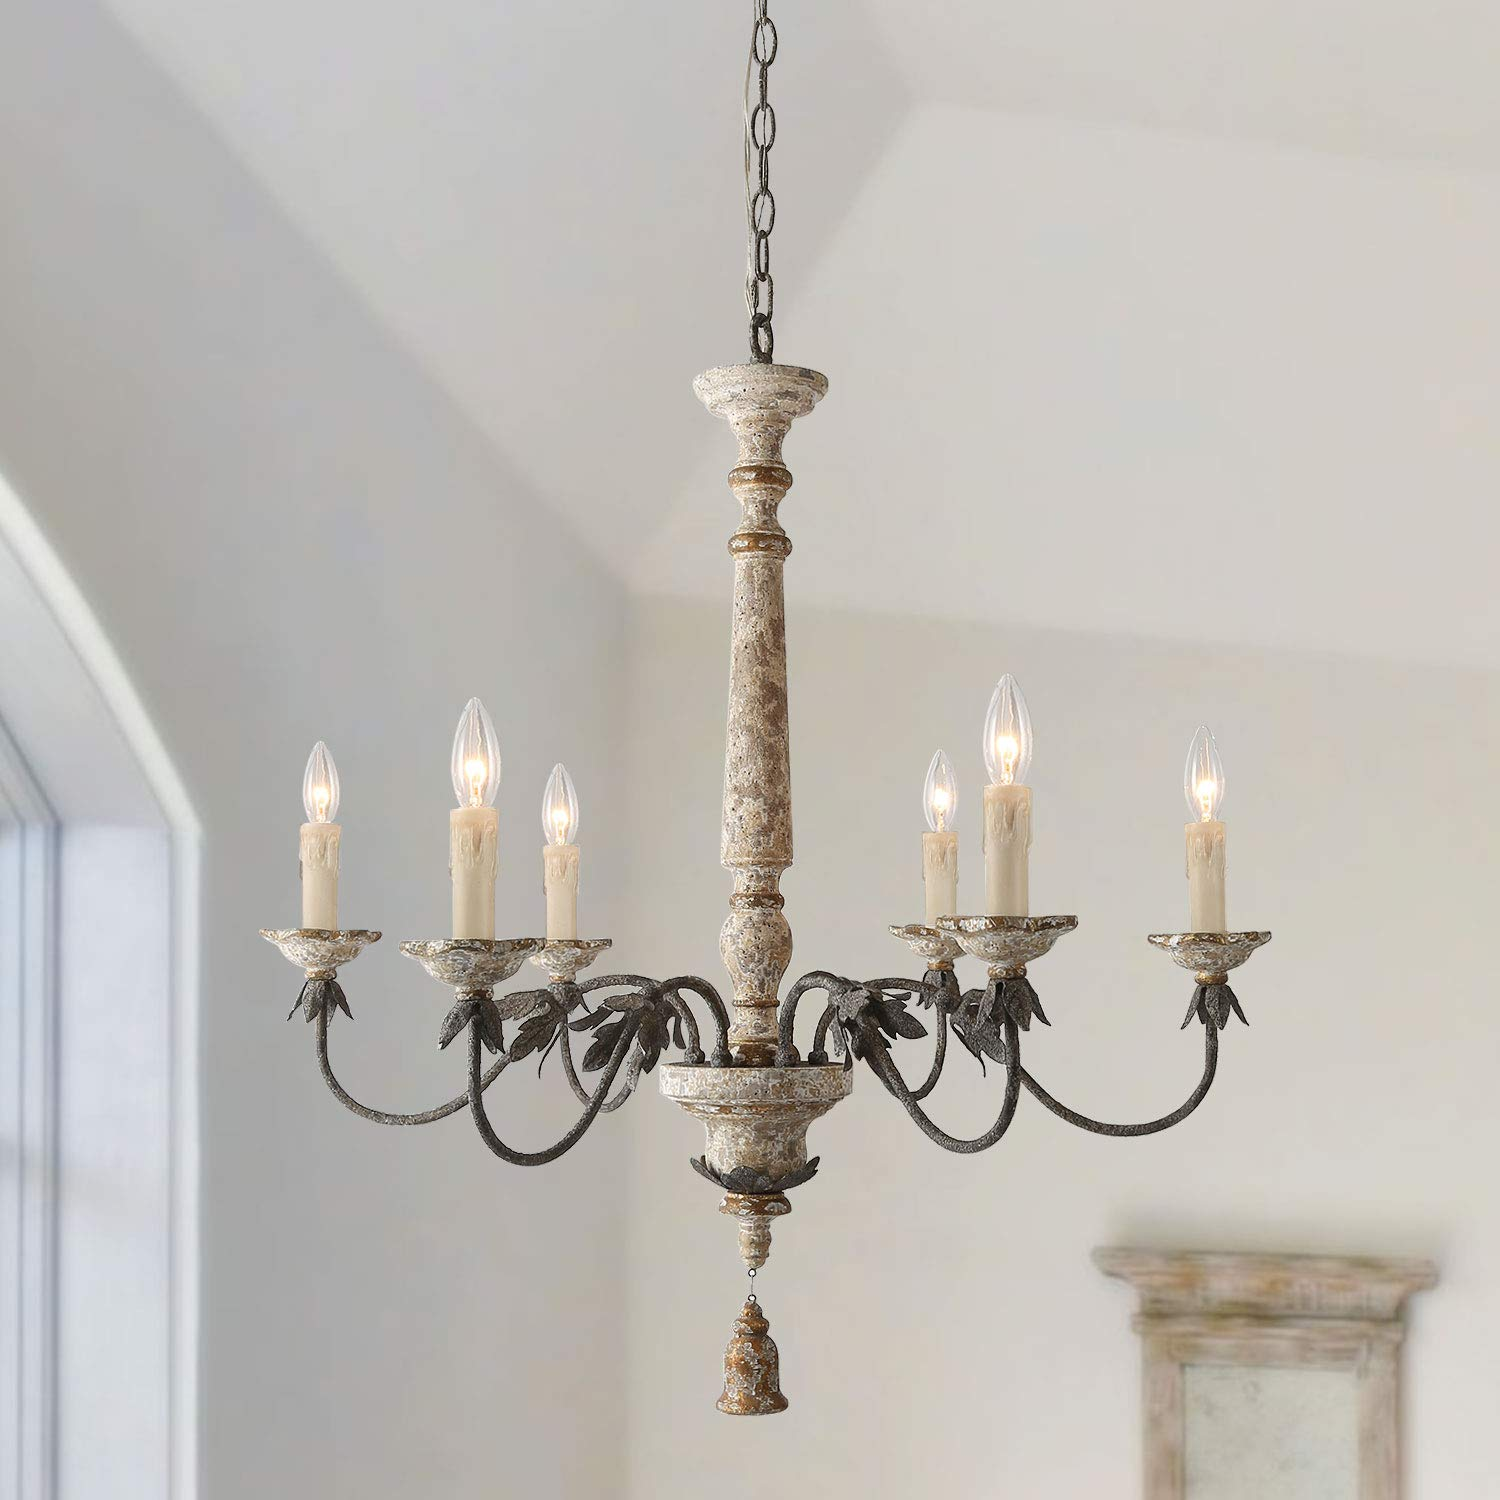 """LALUZ 6 Lights French Country Chandelier with Metal Flower Arms in Distressed Wood and Rusty Steel Finish, 31.1"""" Large Shabby Chic Dining Room Pendant Light Fixture, A03484"""